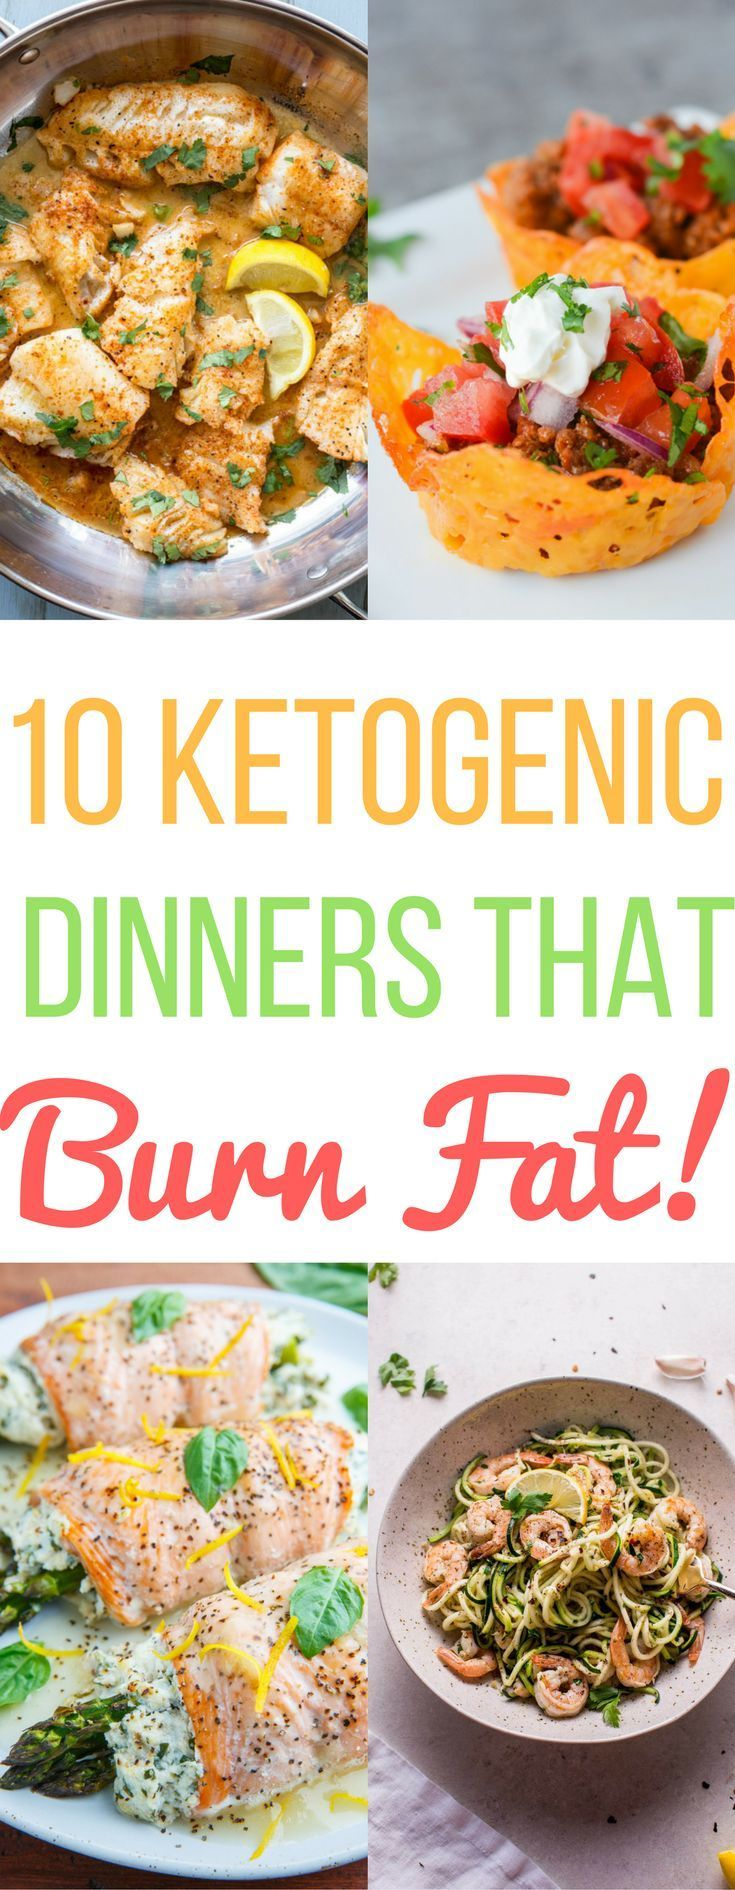 10 tasty ketogenic dinners that help you lose weight dietas 10 tasty ketogenic dinners recipes ideas low carb keto diet healthy food family easy quick dinner forumfinder Image collections